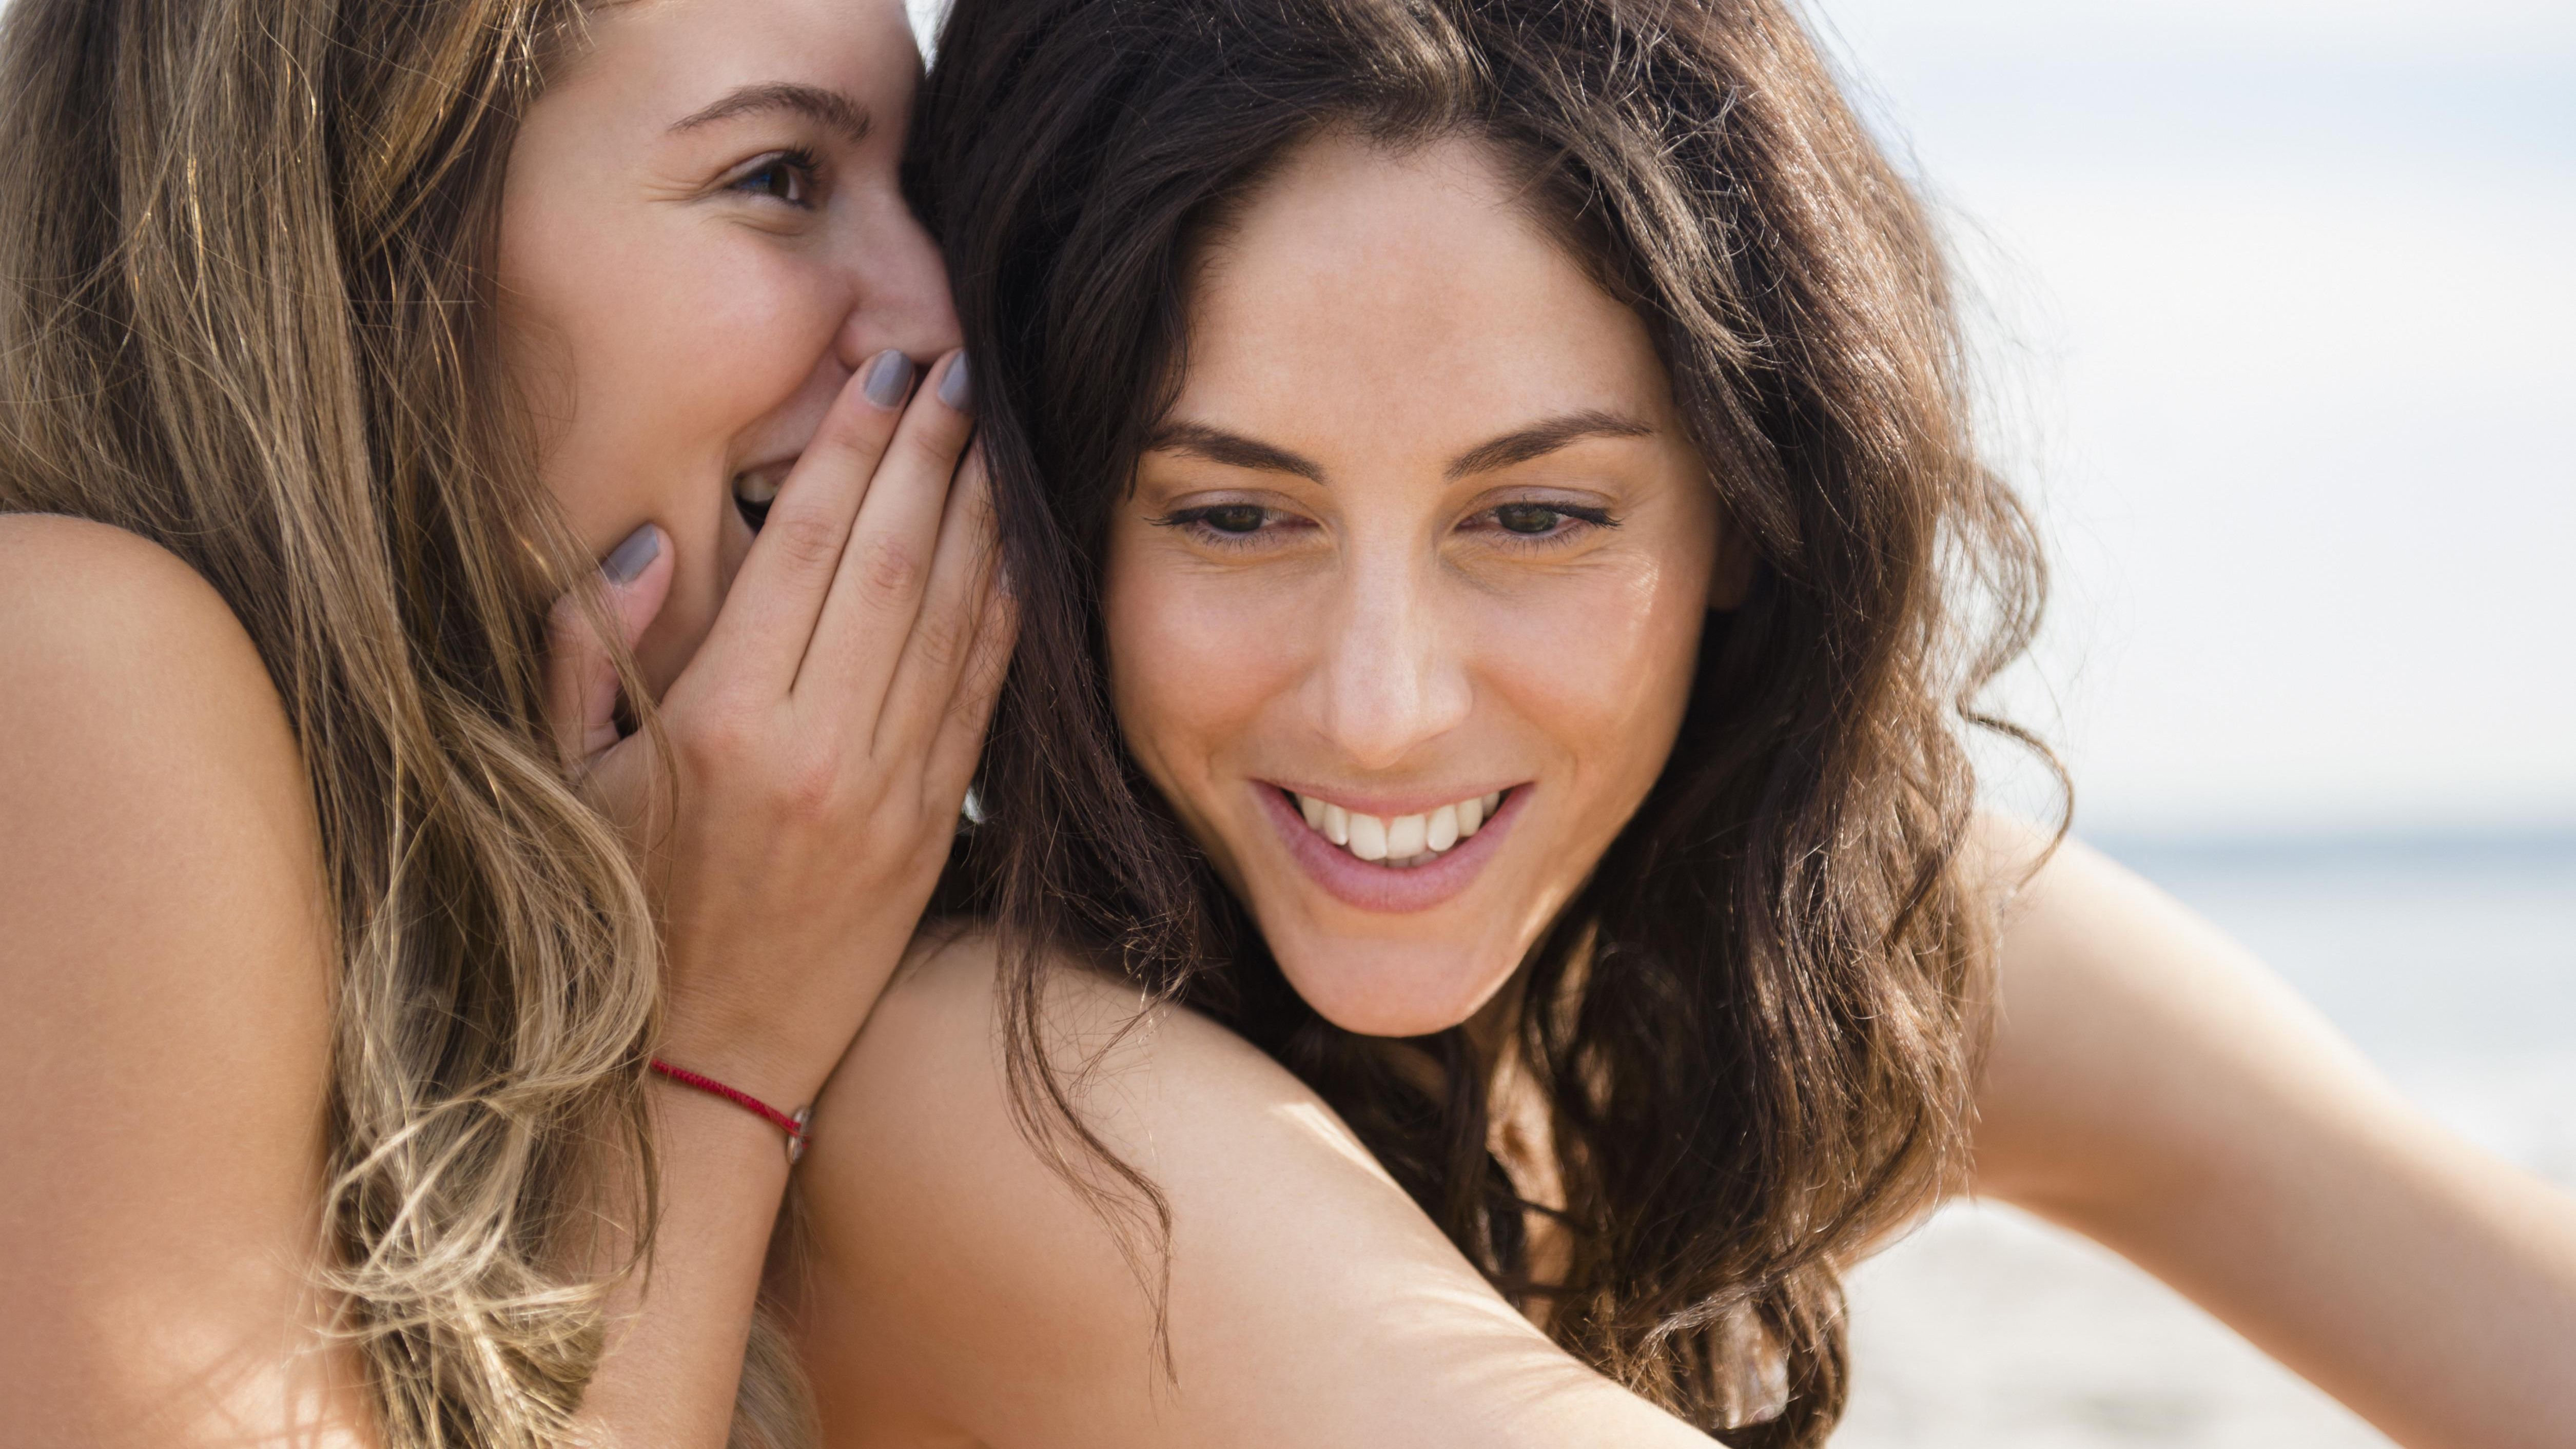 A Lesbian S Guide To Being A Good Girlfriend